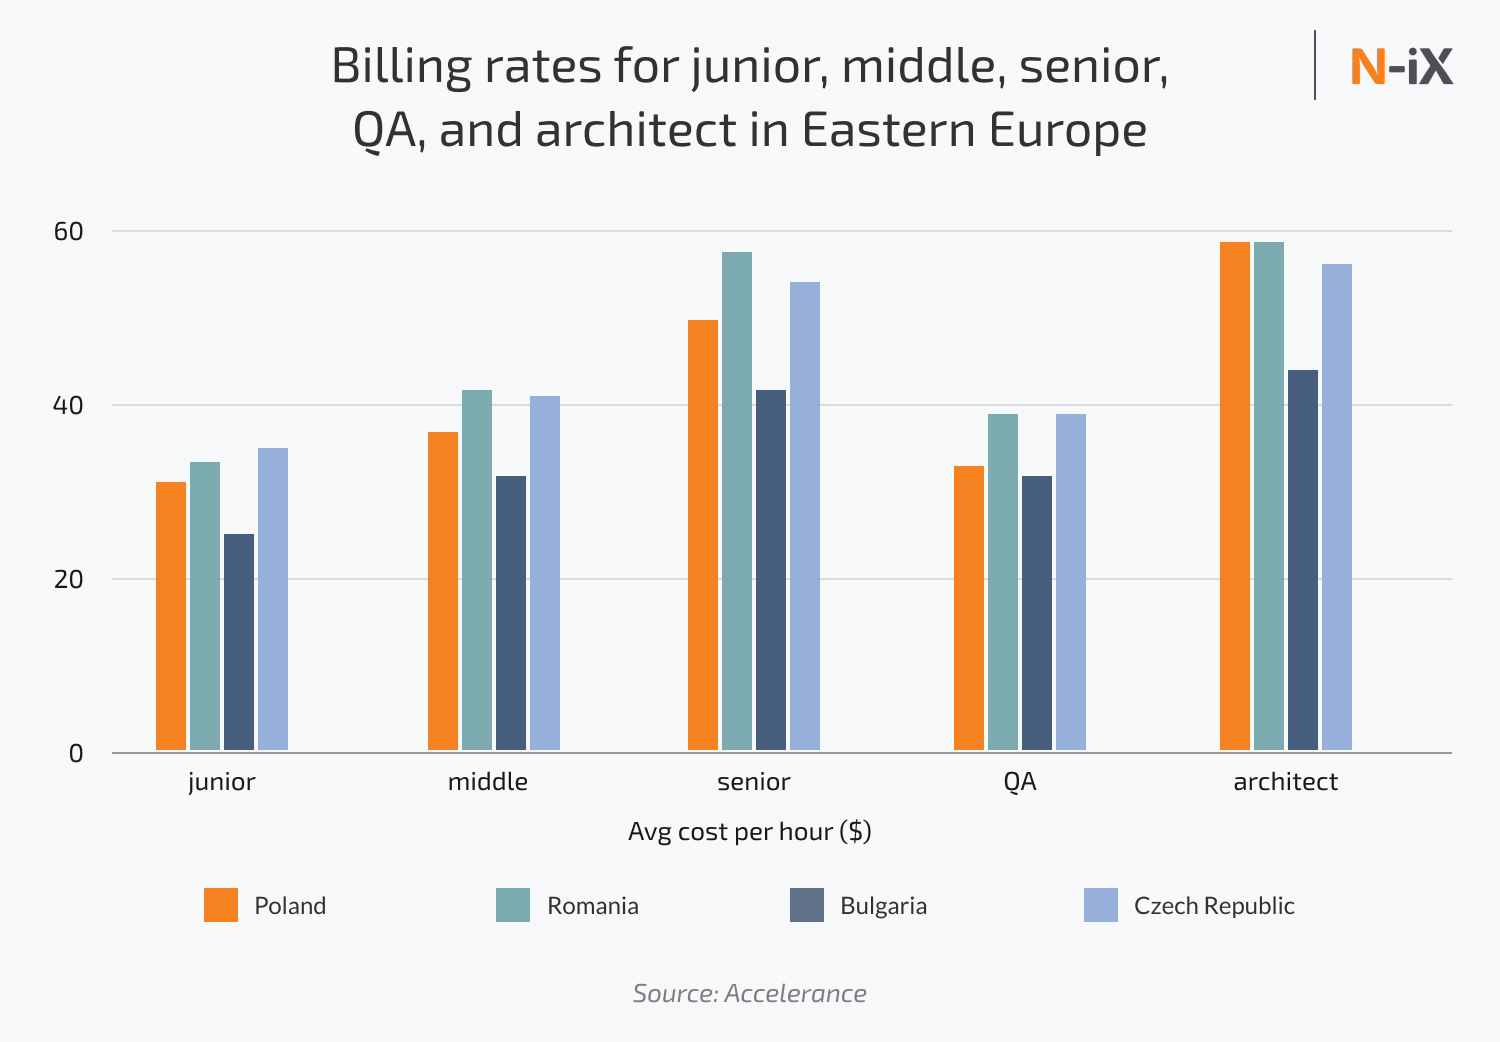 billing rates for software engineer in Eastern Europe